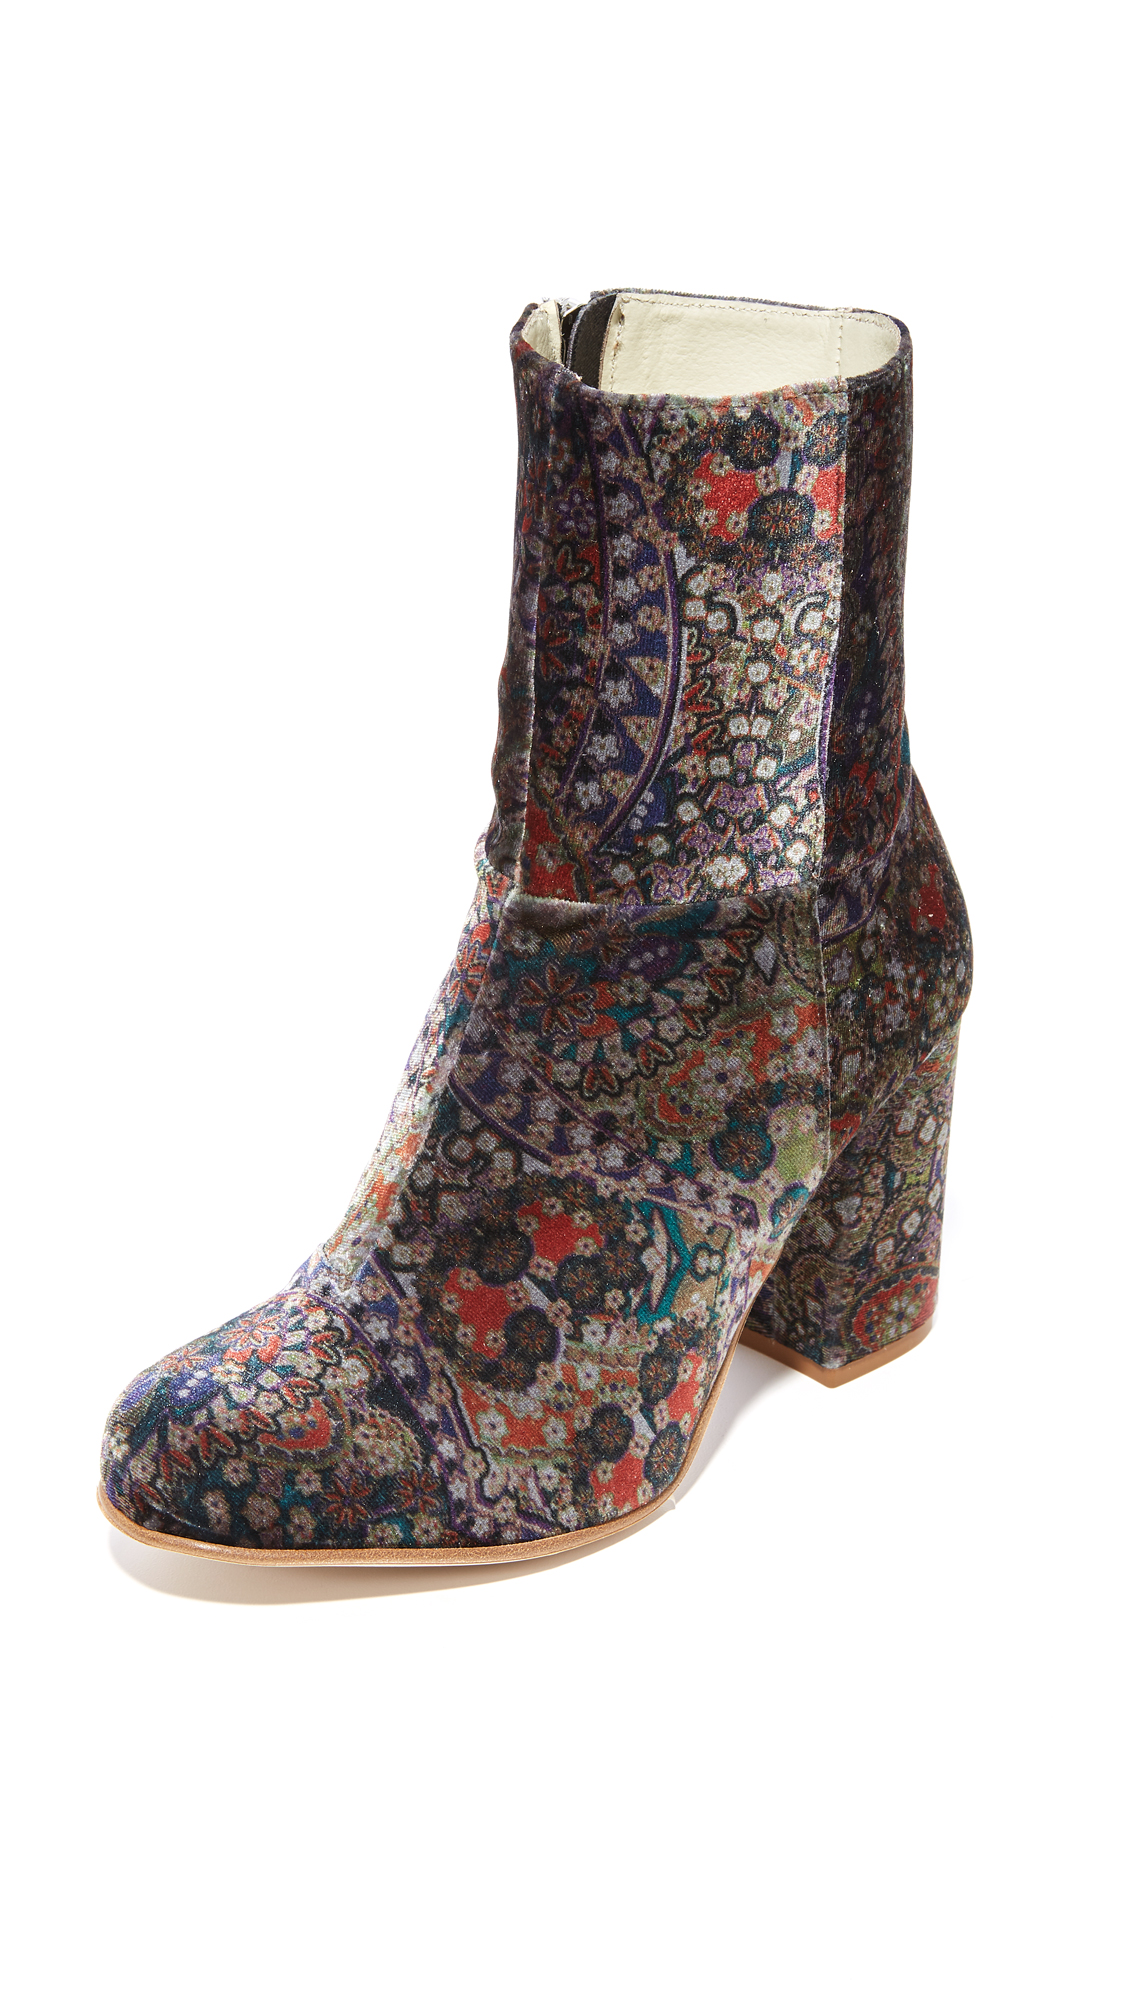 Ouigal Myra Booties - Japan Blue